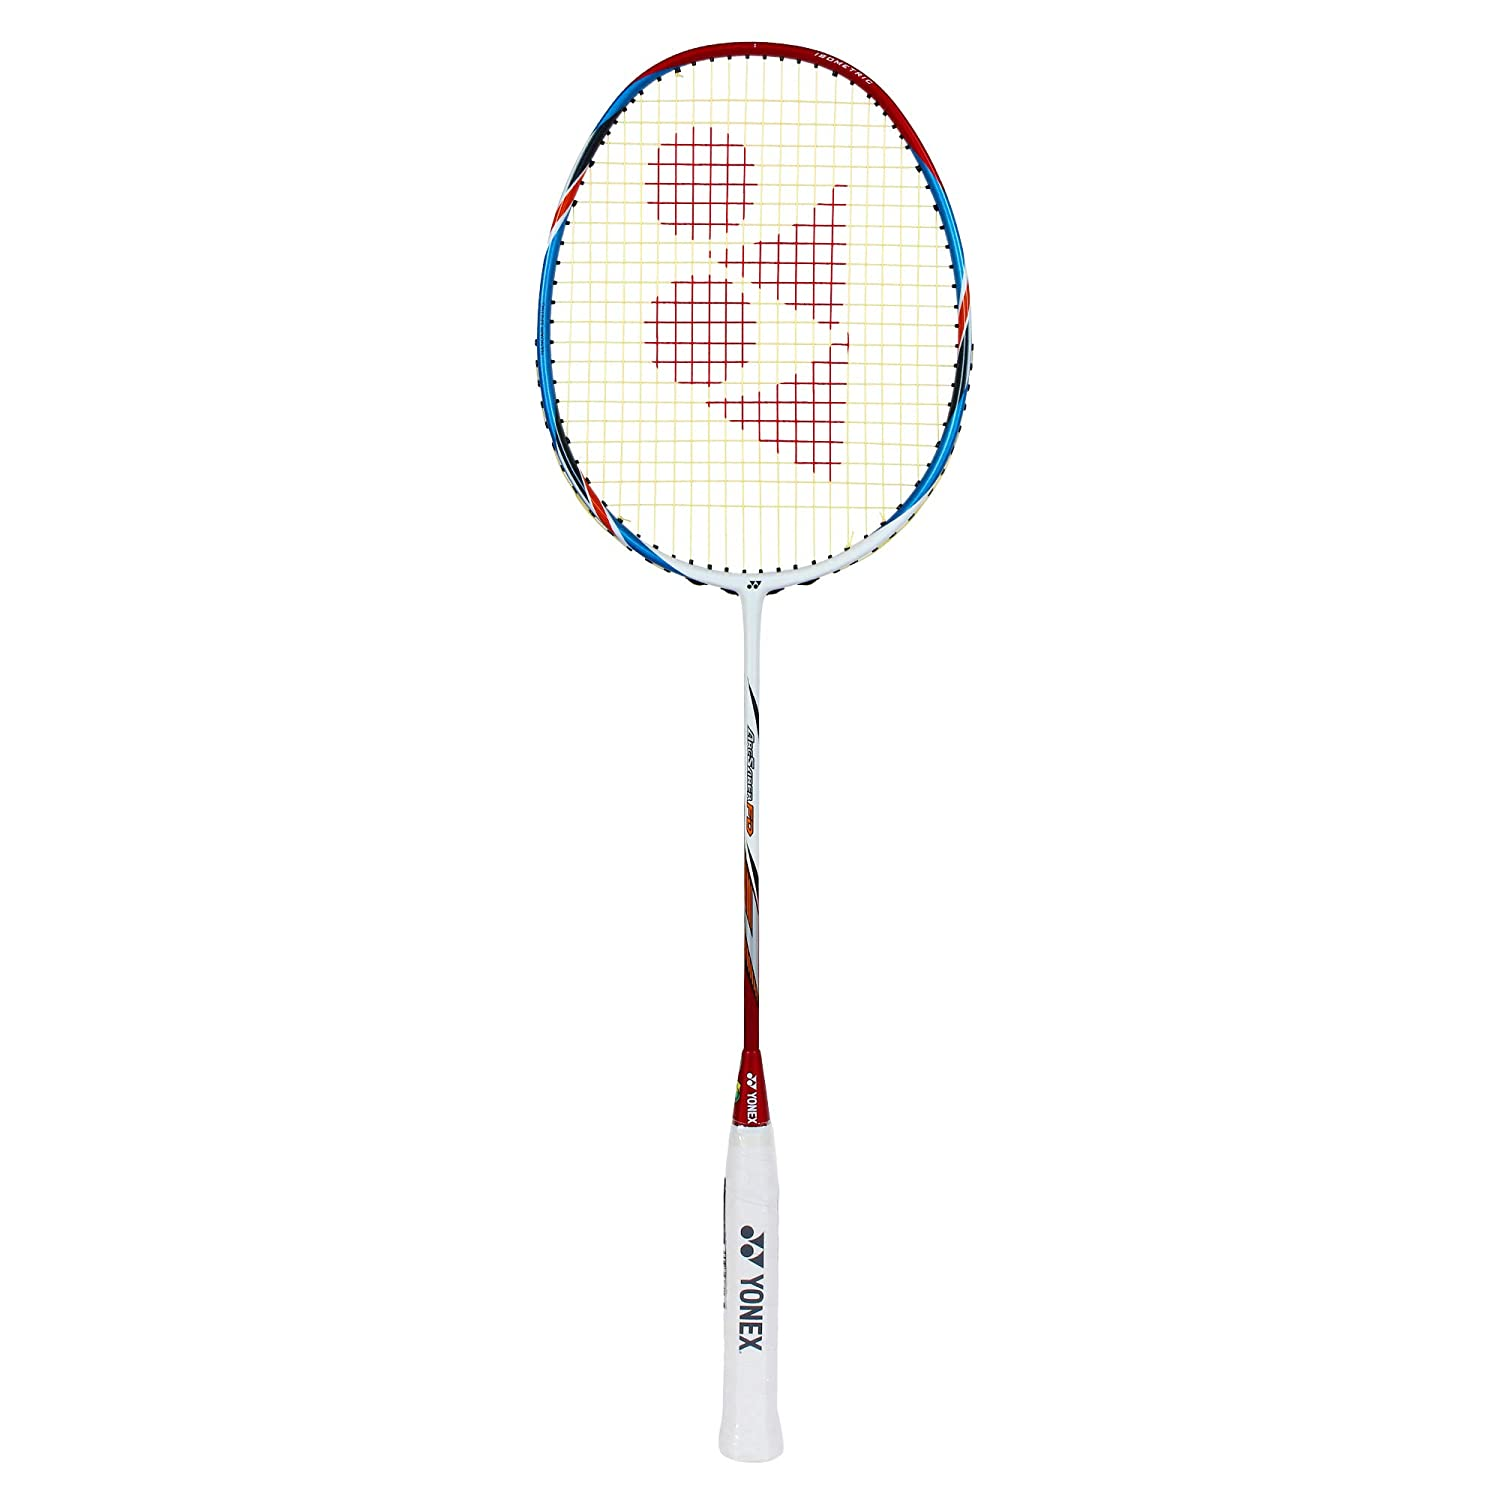 The Best Badminton Rackets For 2020 - Reviews and Buyers Guide